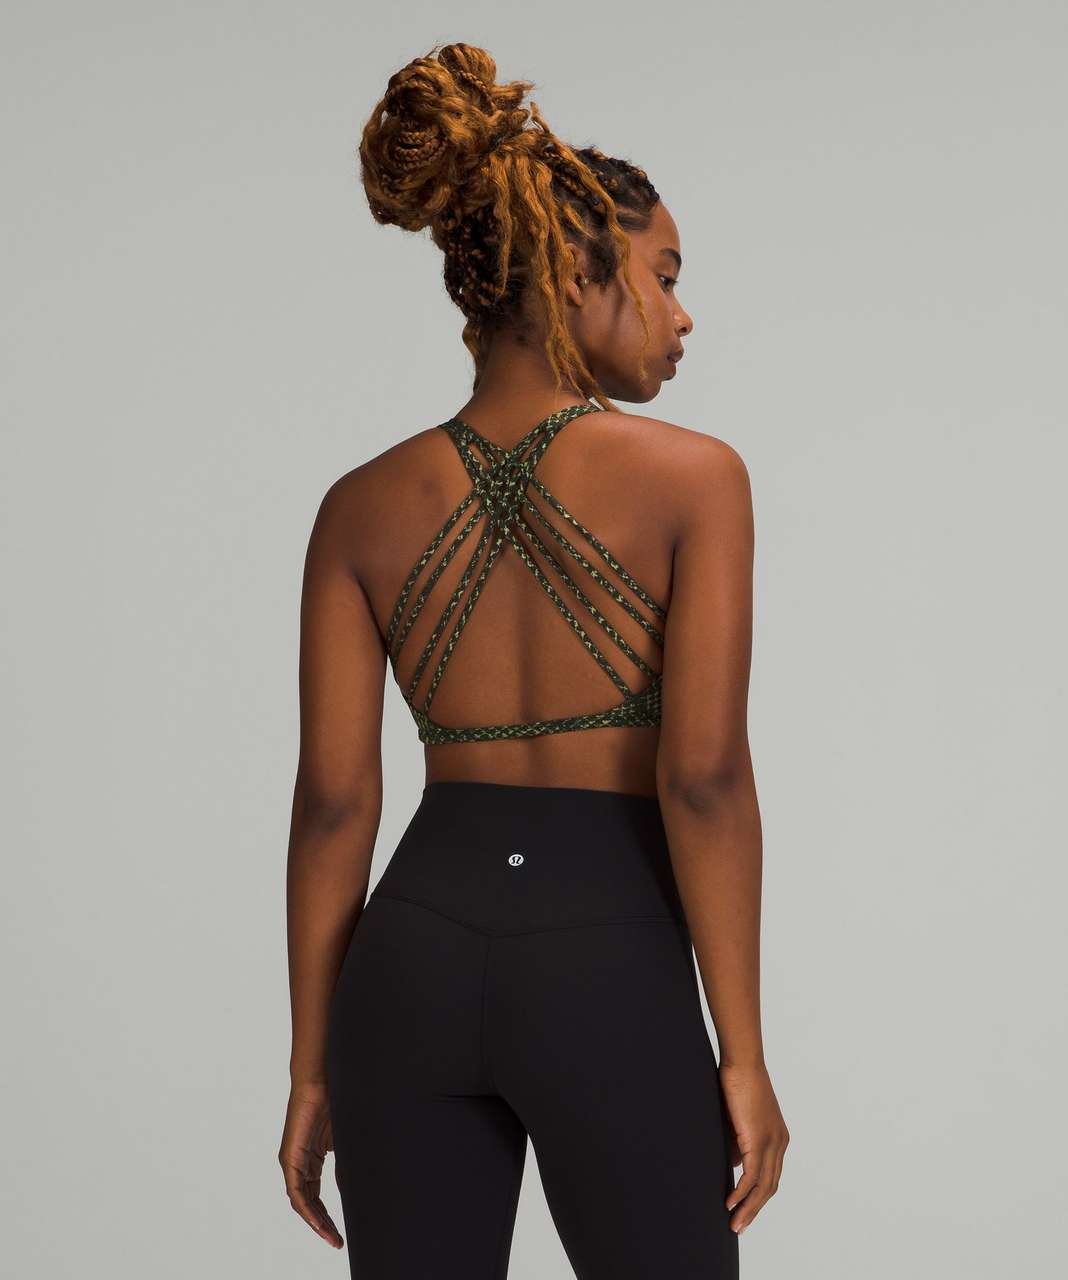 Lululemon Free to Be Bra - Wild *Light Support, A/B Cup - Reptilia Jacquard Rainforest Green Rosemary Green